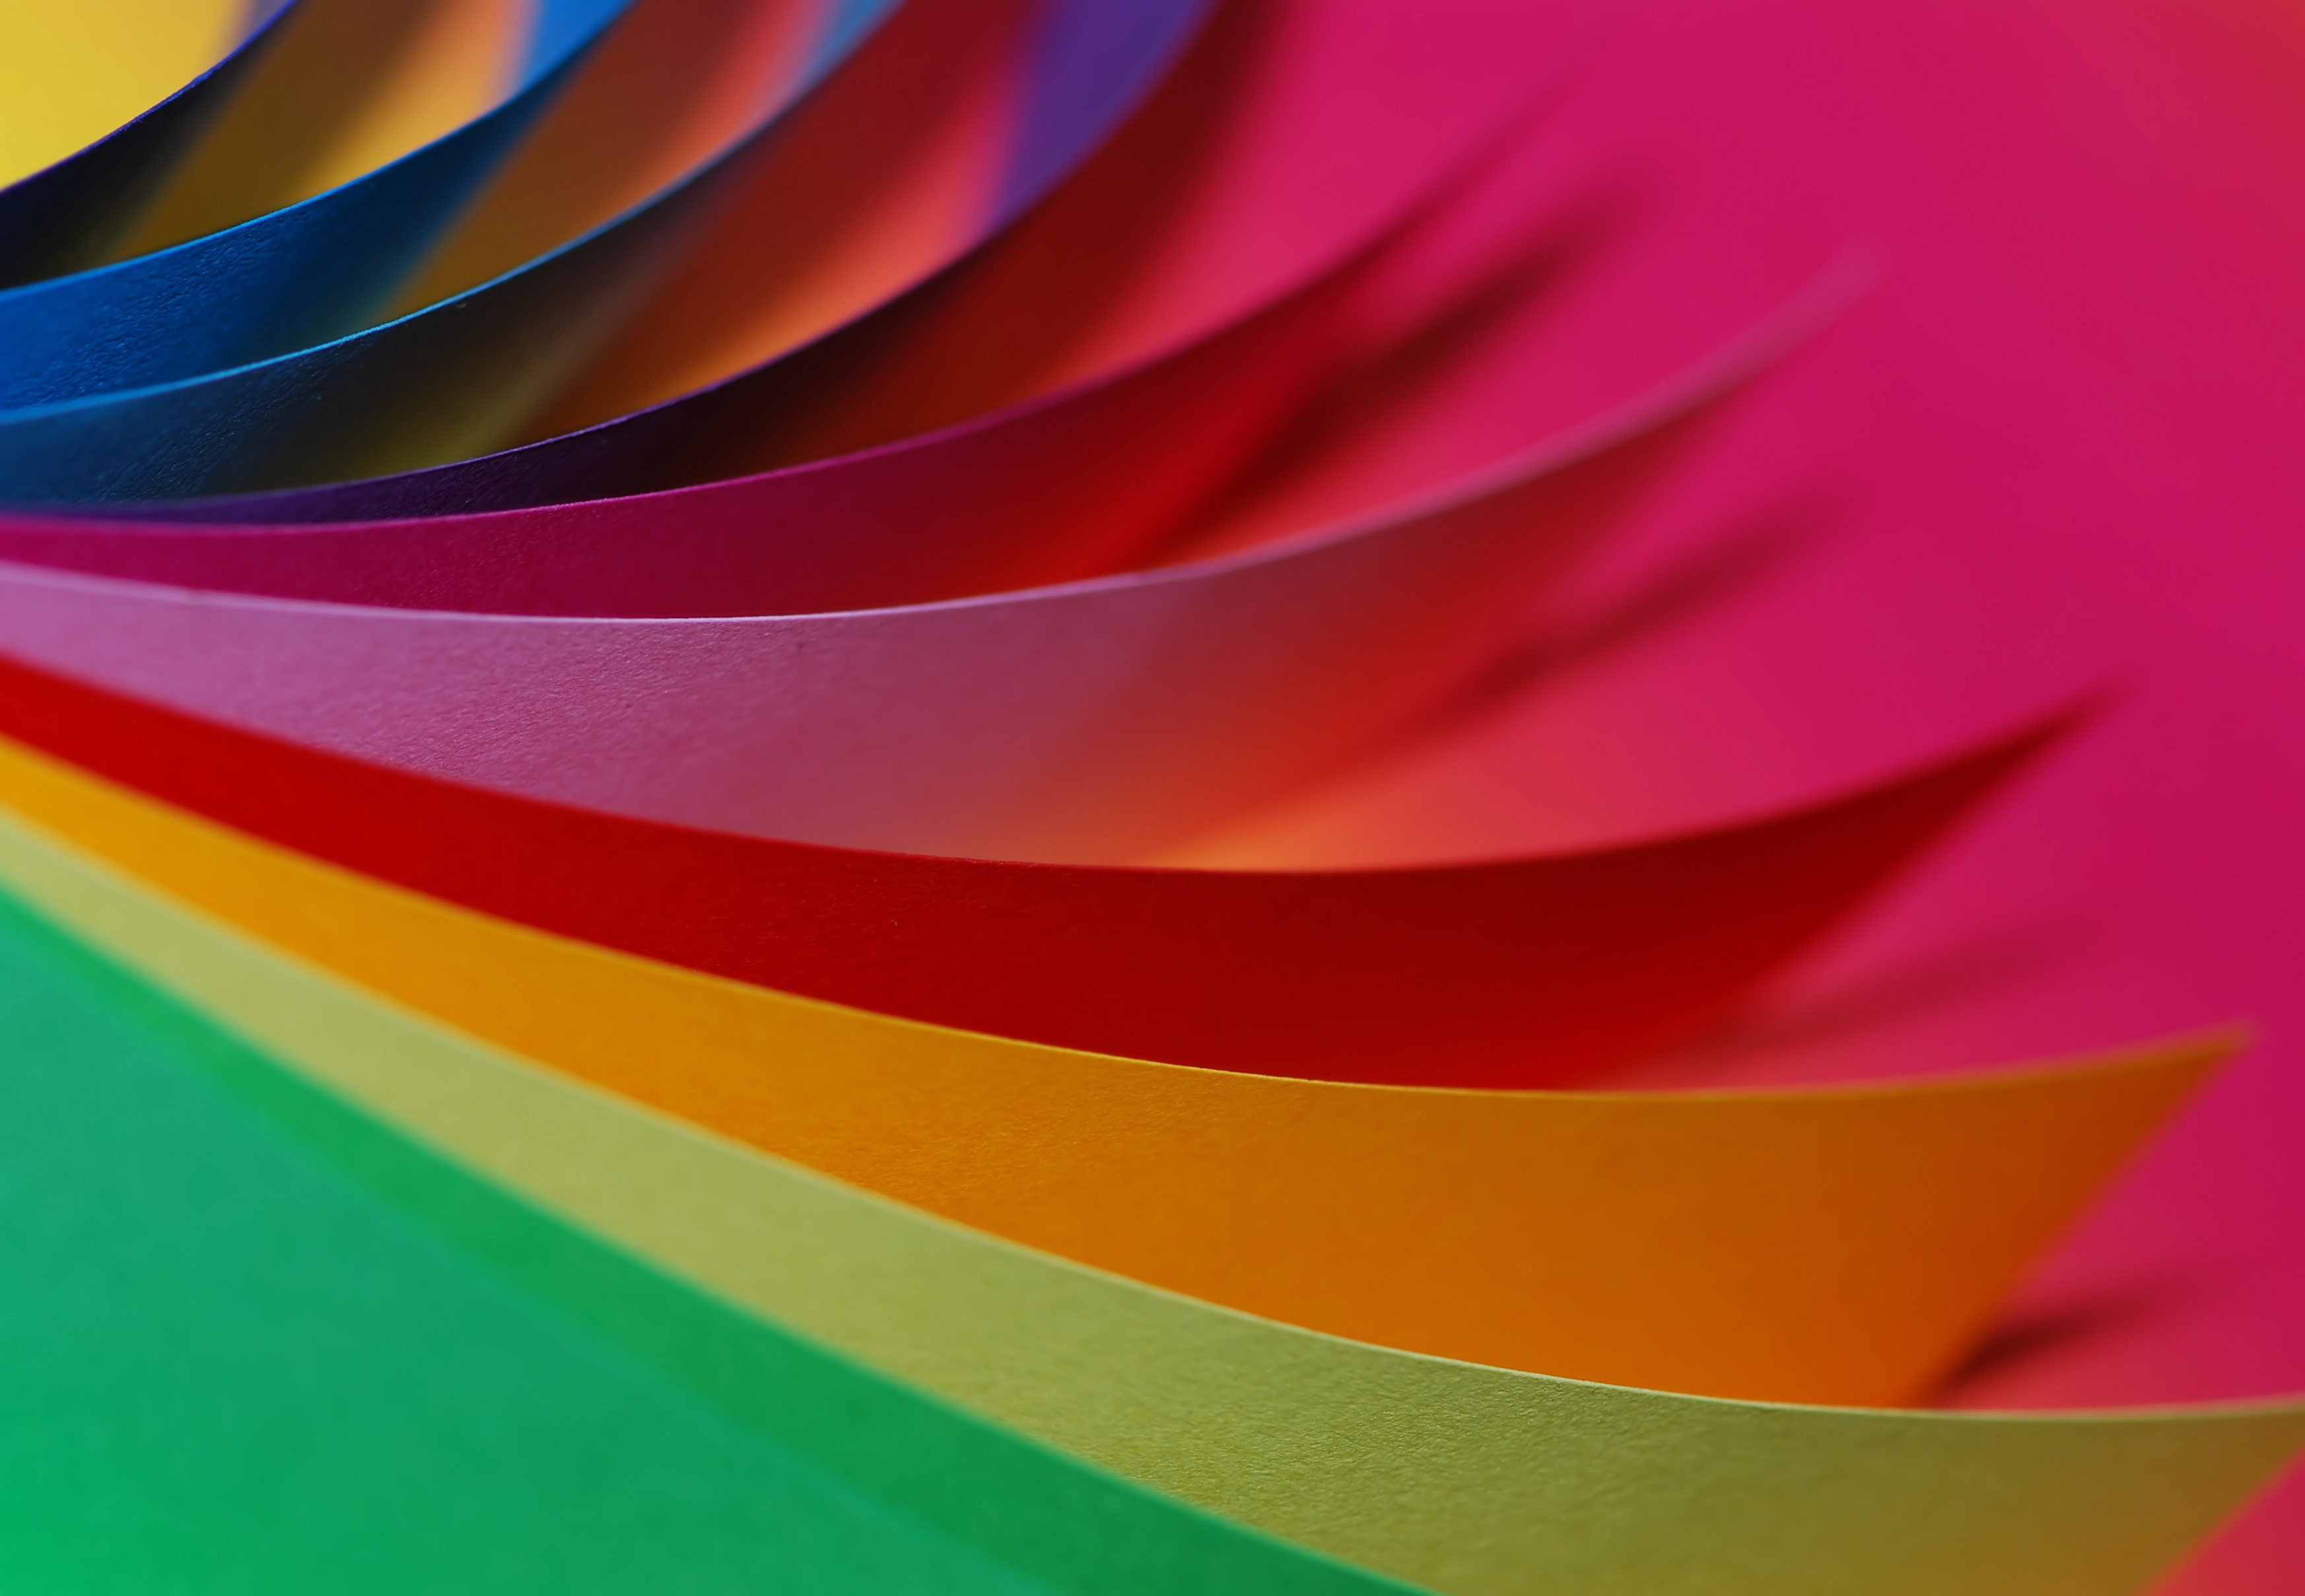 Image of colorful papers